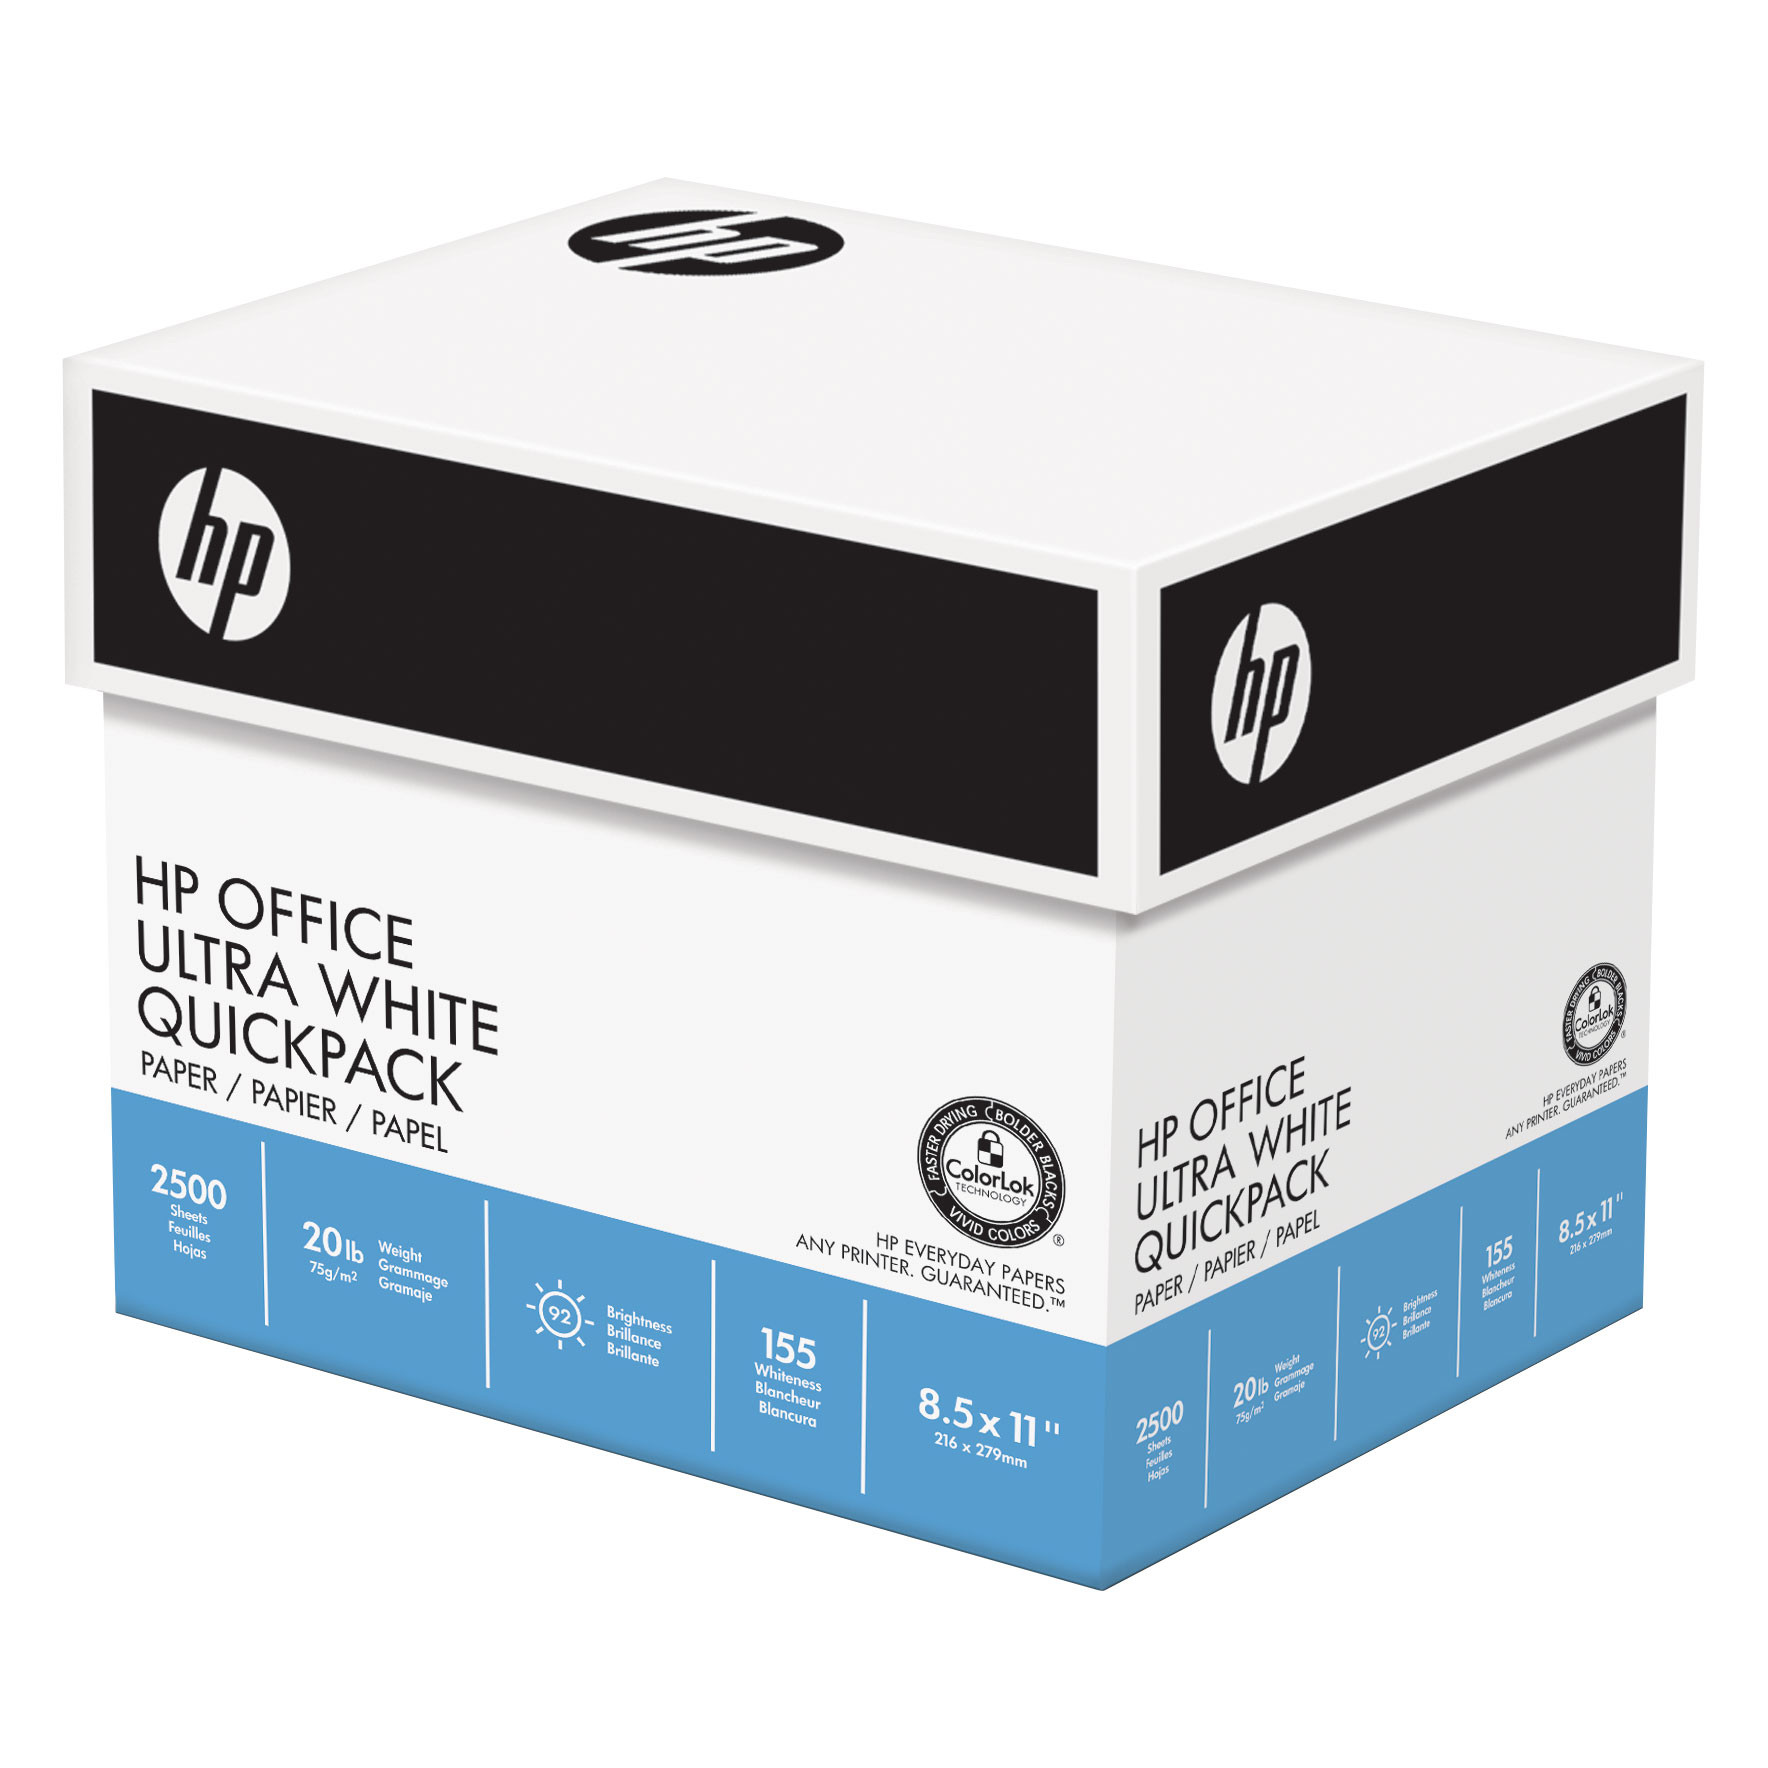 HP Office Ultra White Paper Quickpack Letter 20lb 92-Bright 2500ct